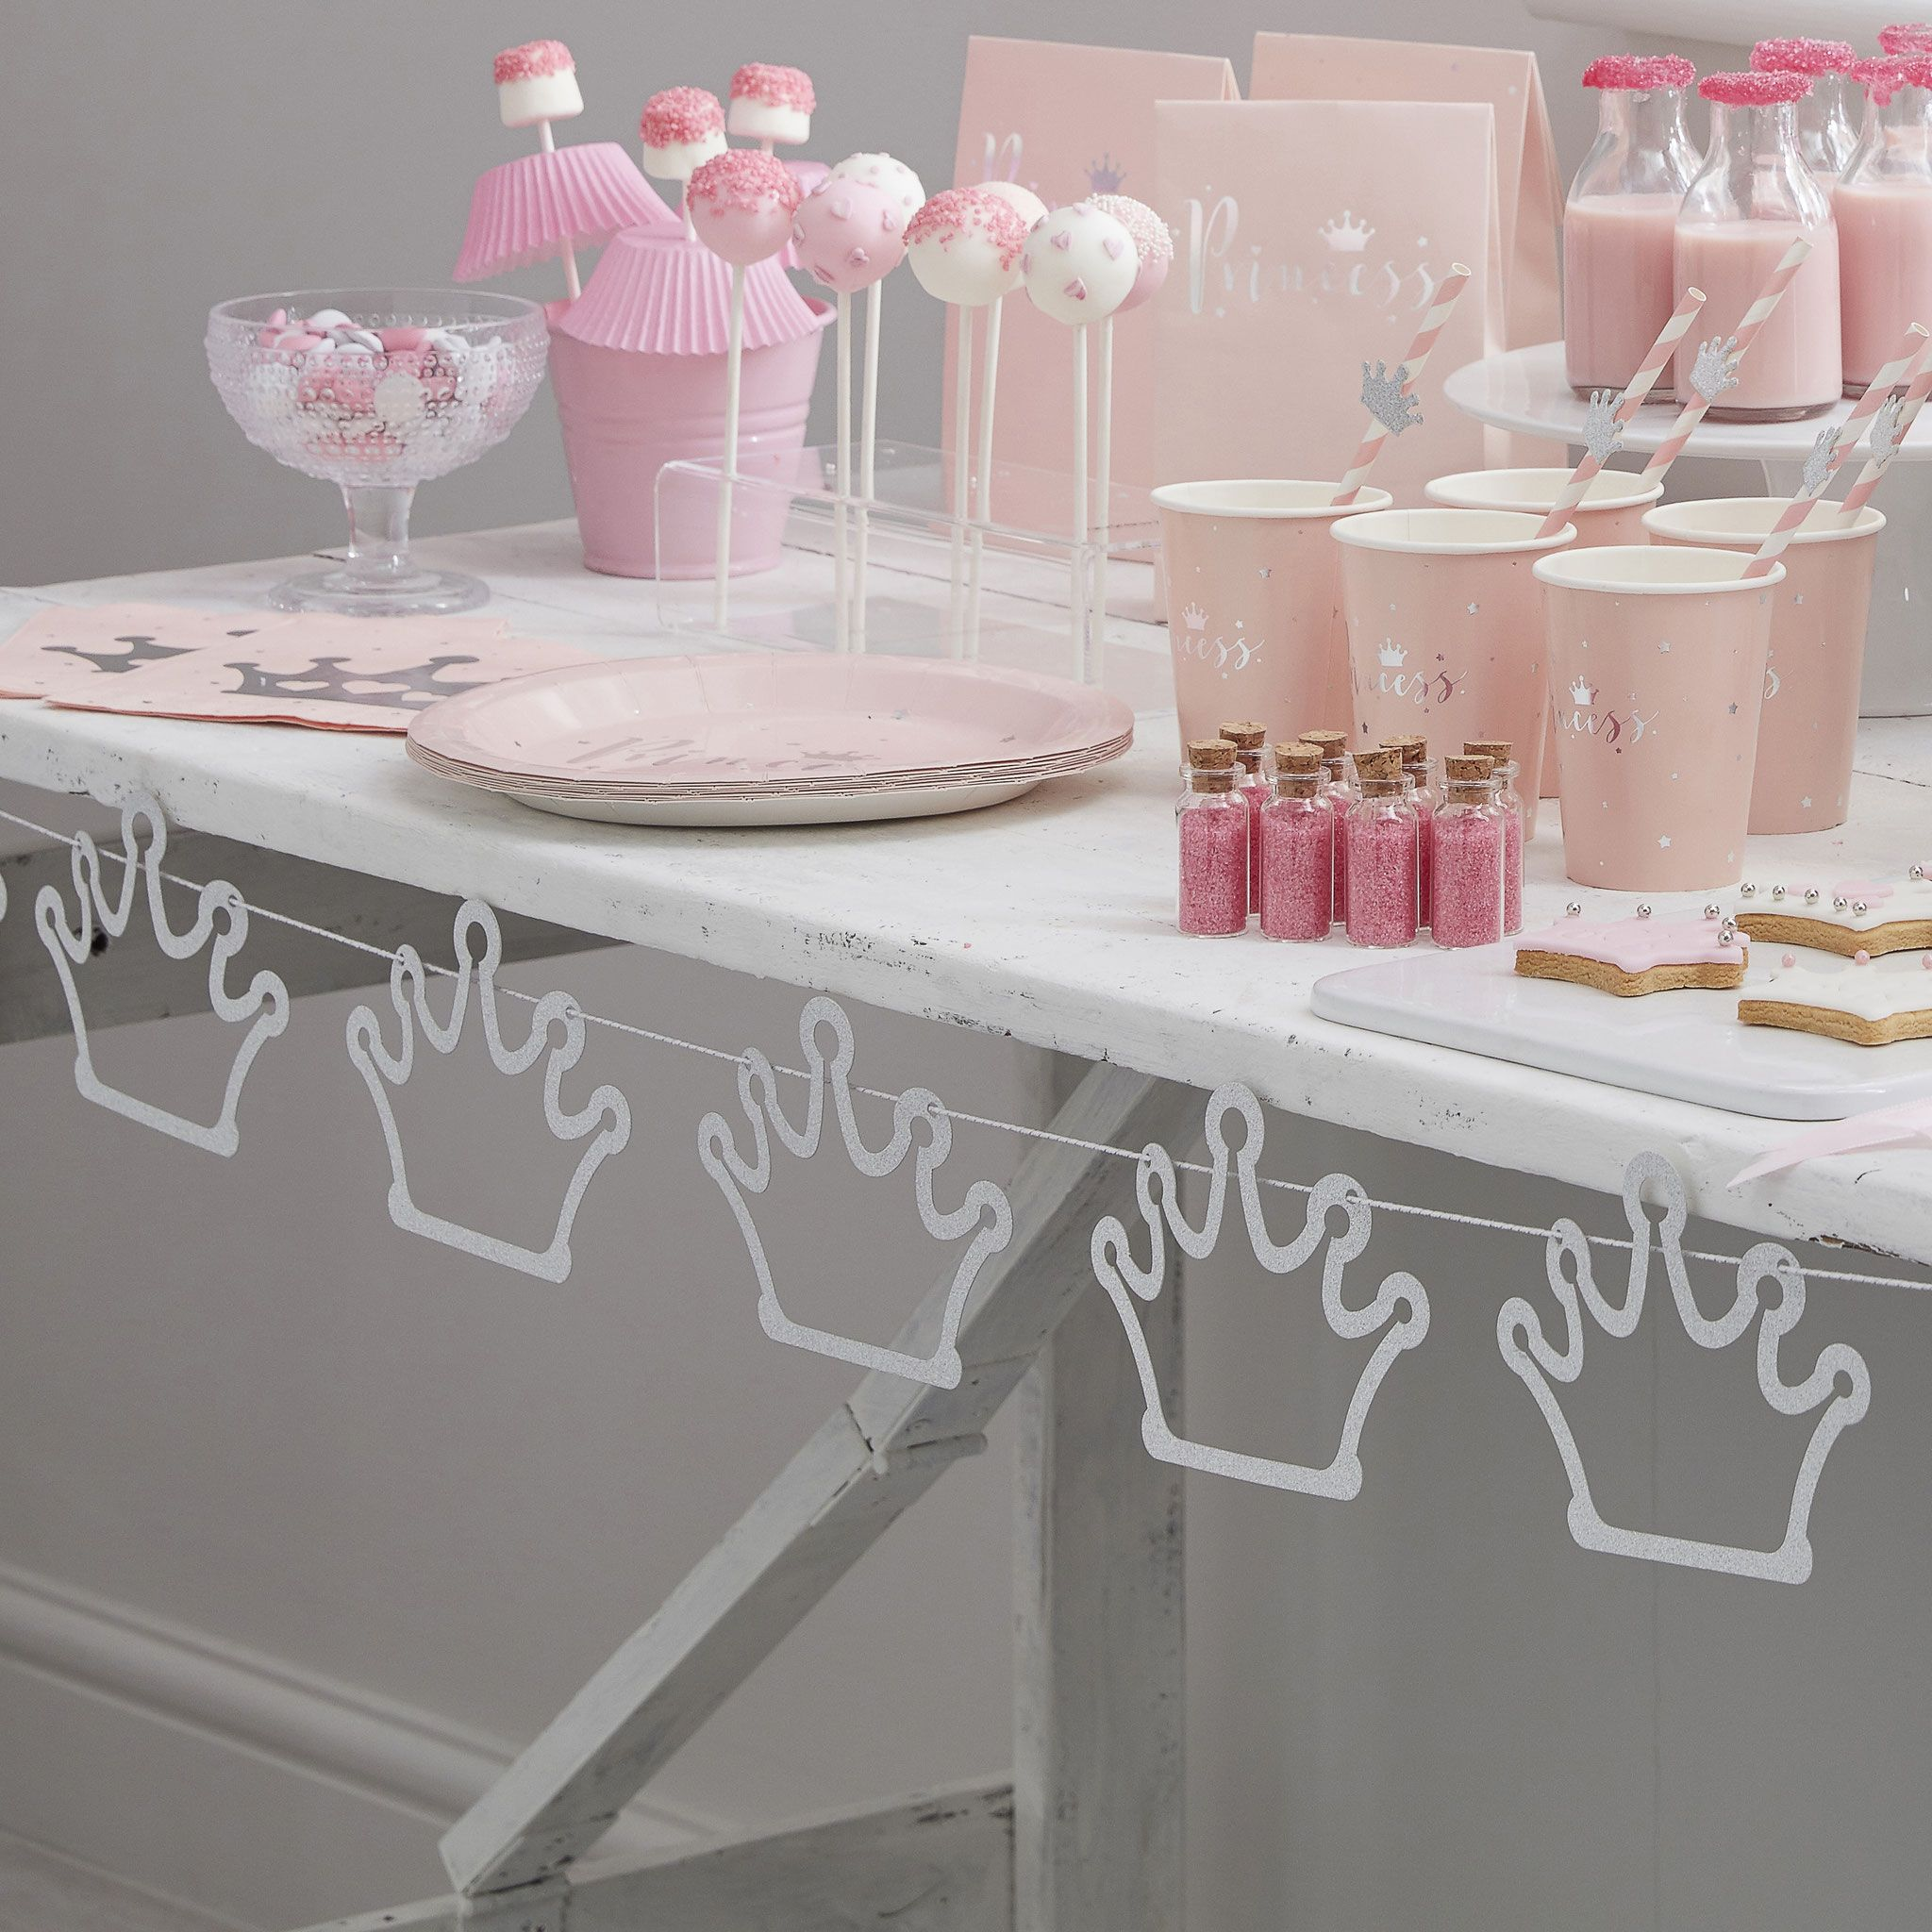 d coration anniversaire fille princesse princess party decor anniversaire princesse. Black Bedroom Furniture Sets. Home Design Ideas